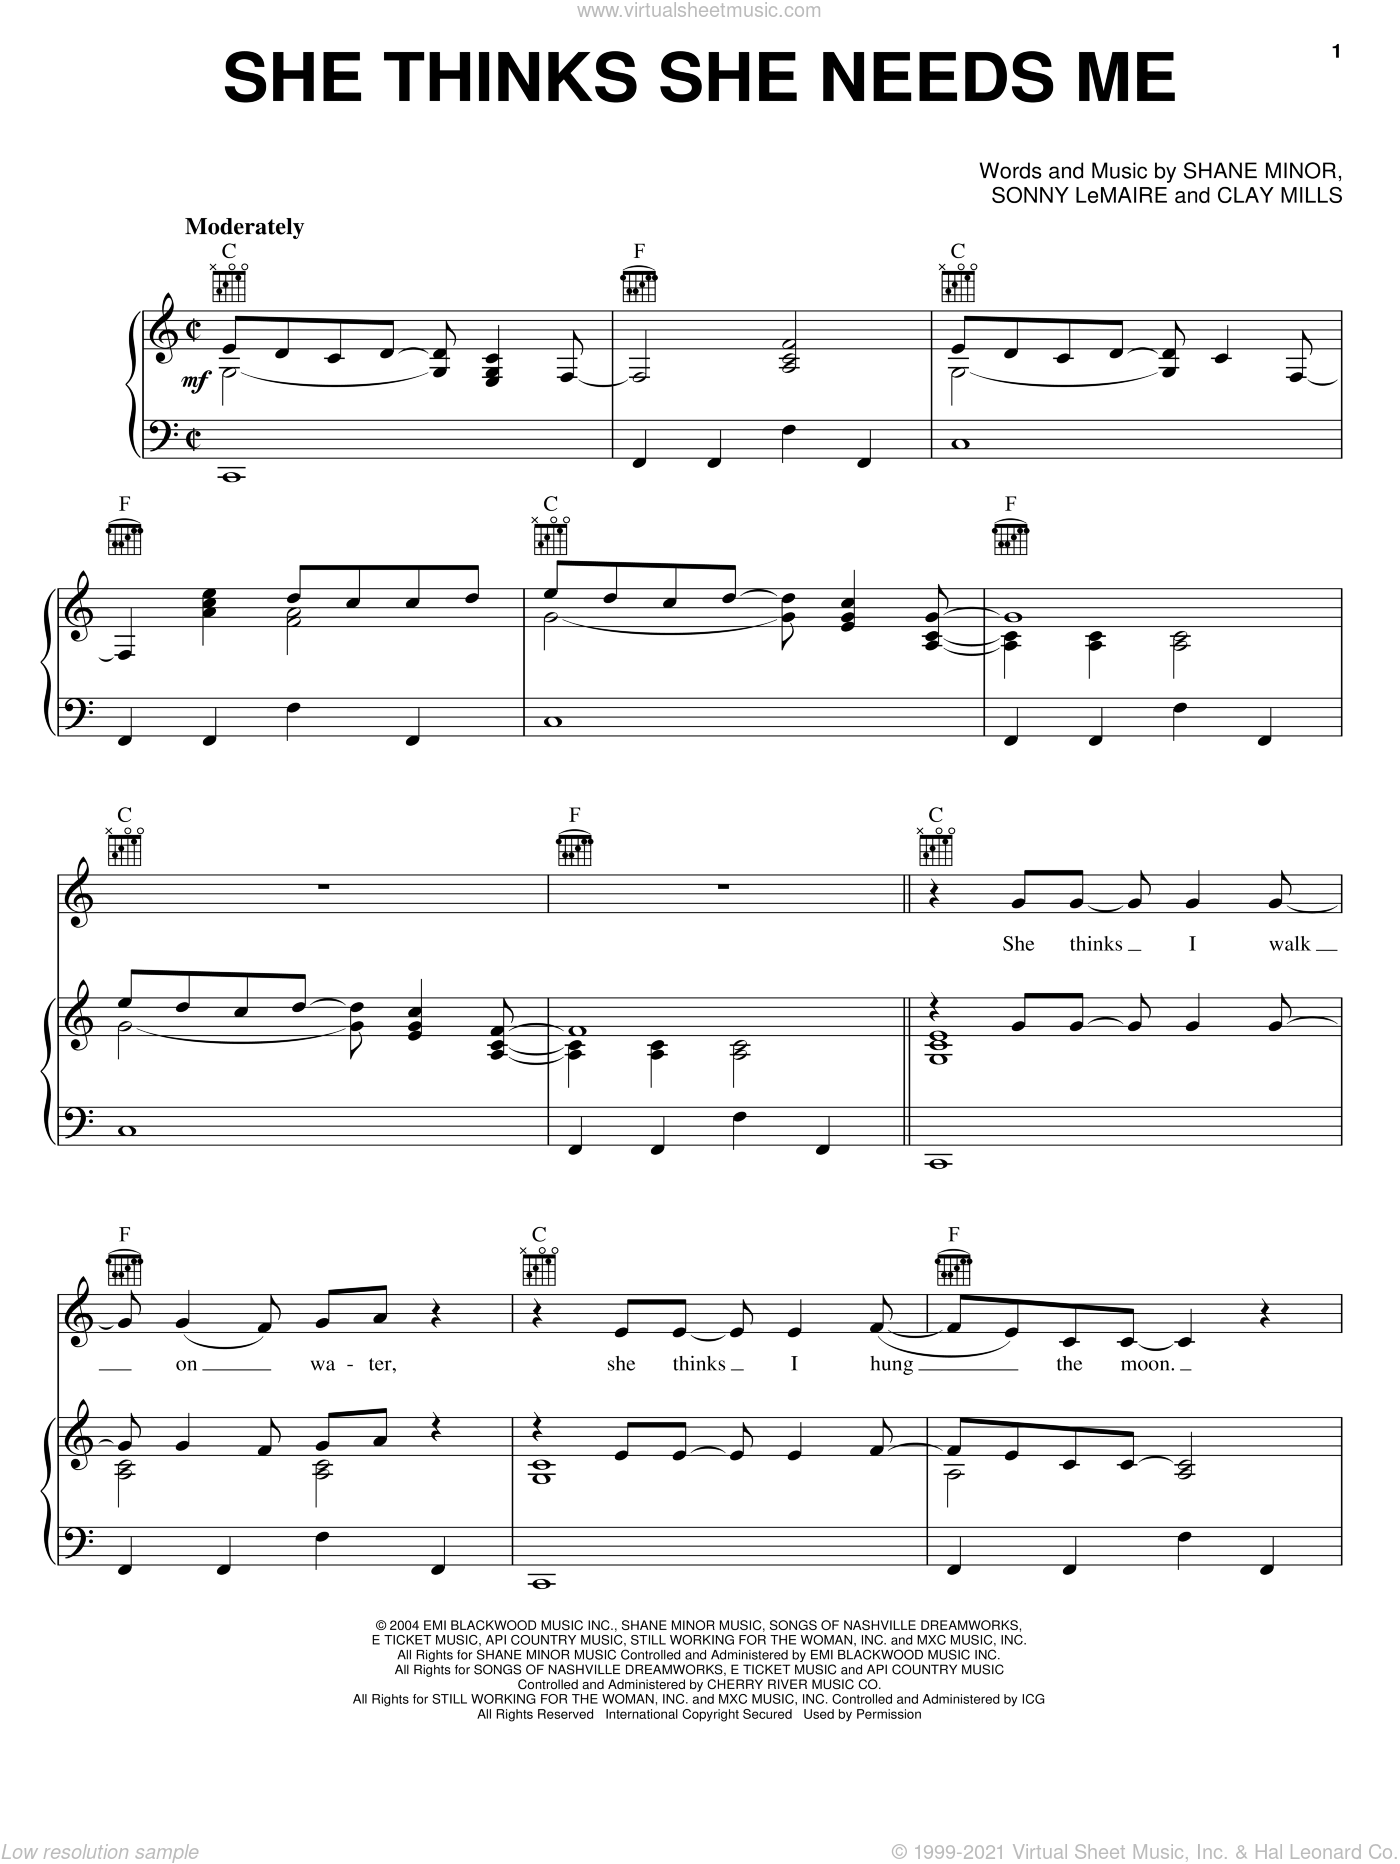 She Thinks She Needs Me sheet music for voice, piano or guitar by Sonny LeMaire, Andy Griggs, Clay Mills and Shane Minor. Score Image Preview.